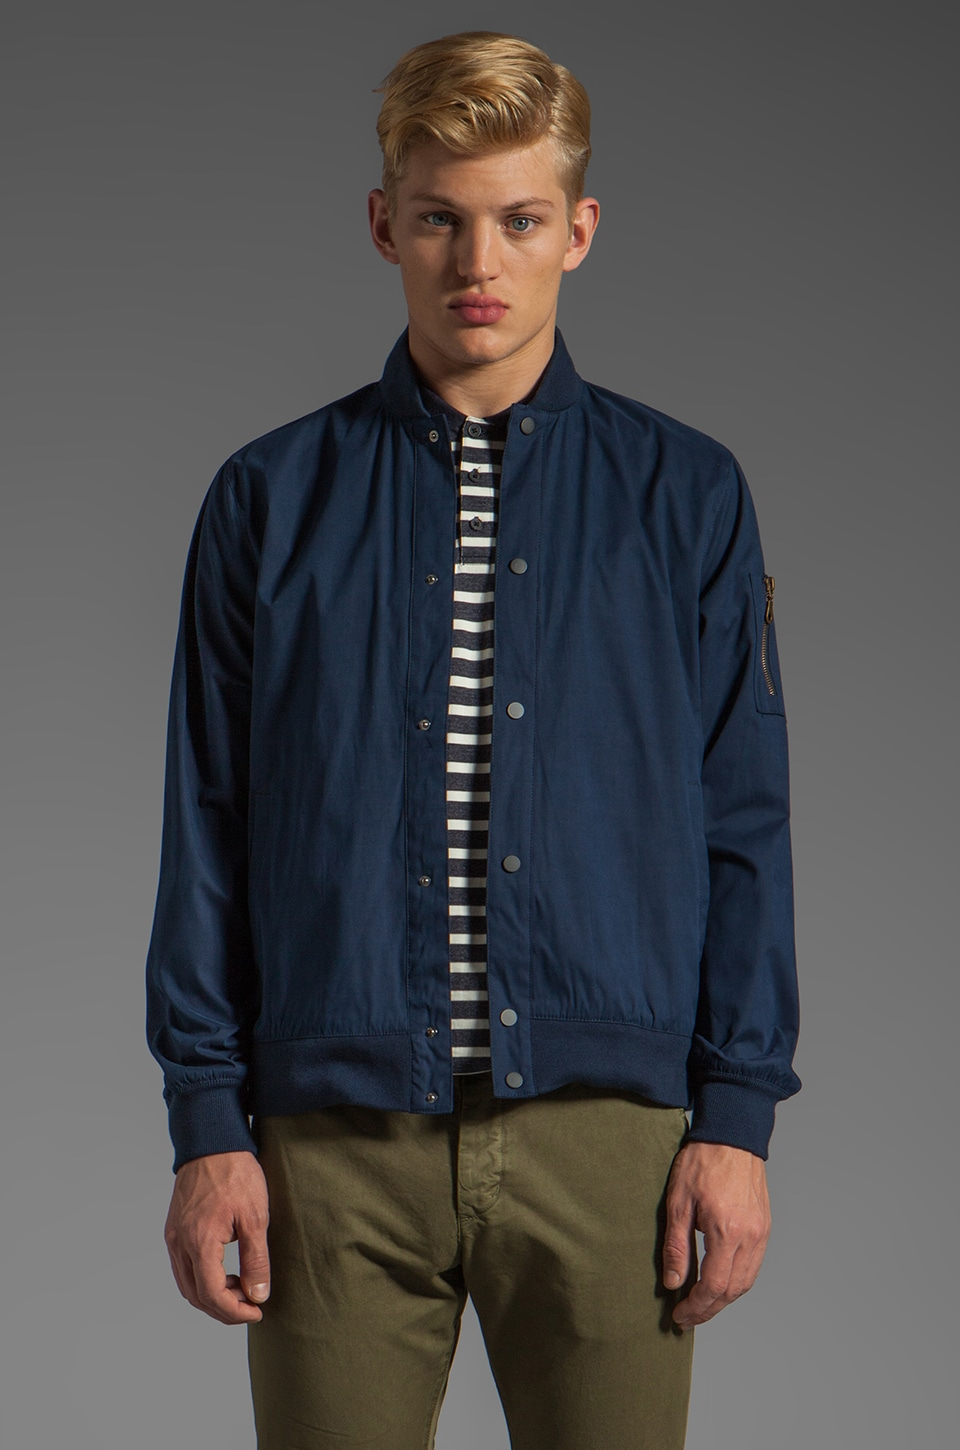 COMUNE CS Daws Jacket in Dark Navy